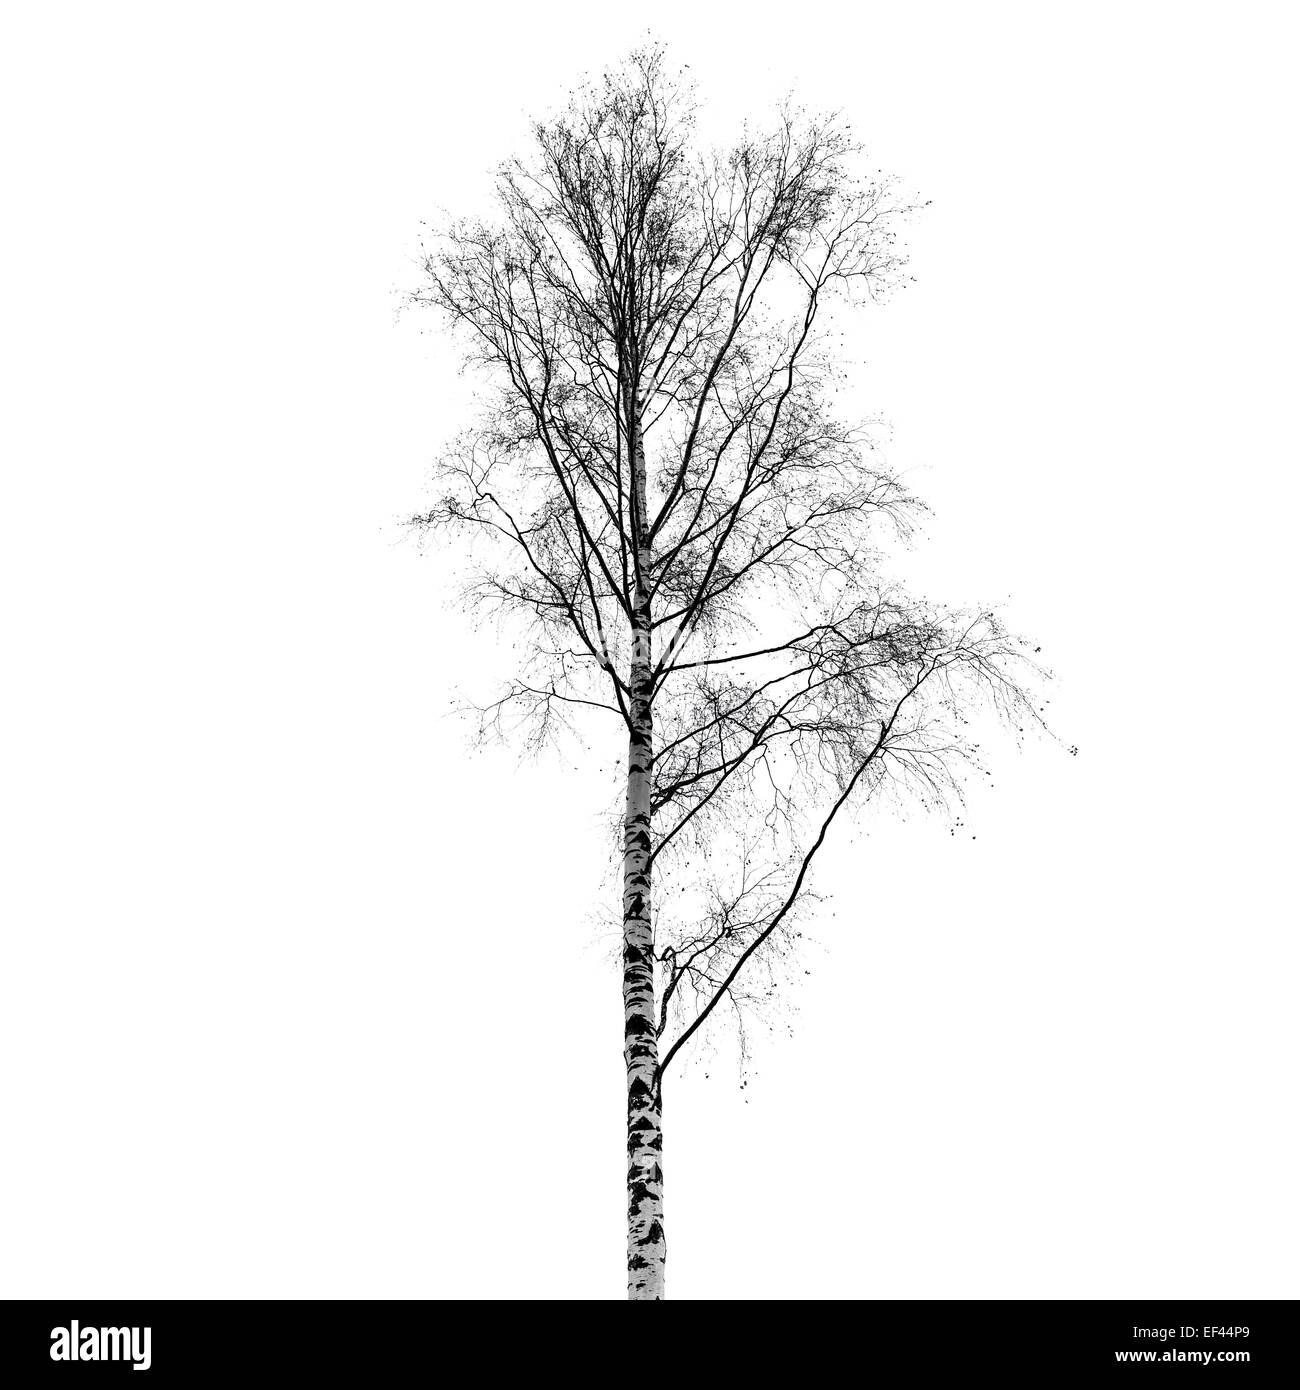 Leafless birch tree silhouette isolated on white background. Stylized photo - Stock Image